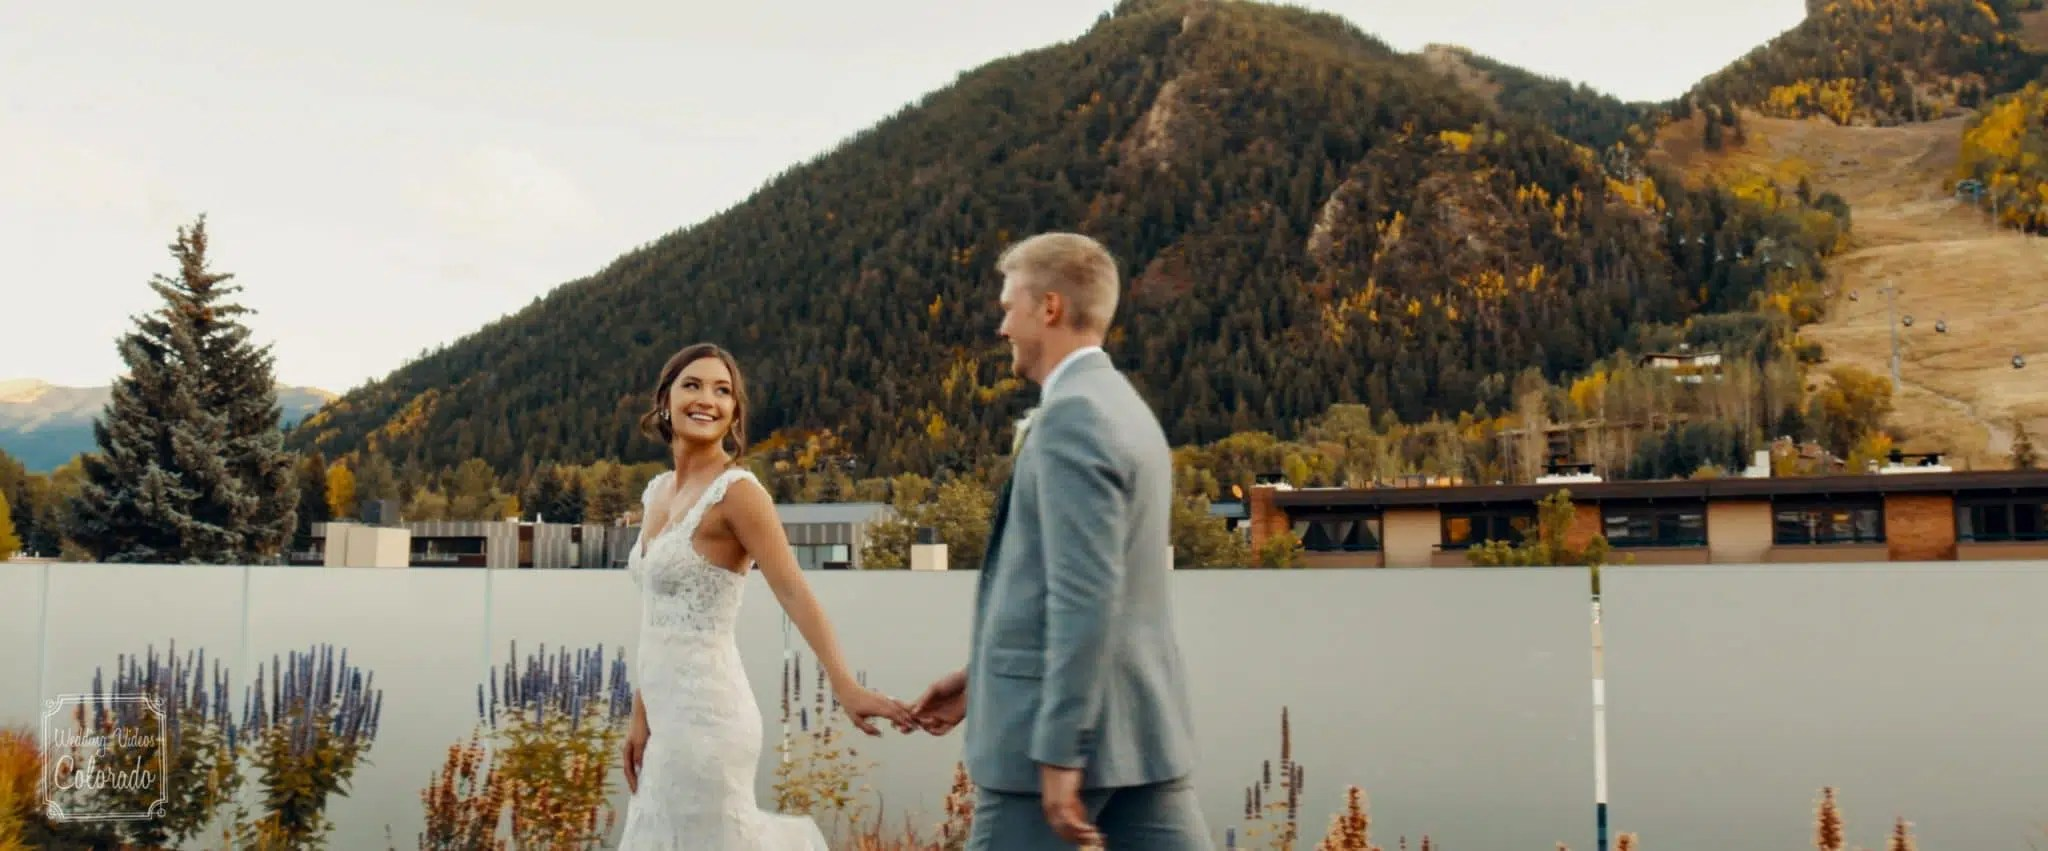 Neil Audrey Wedding Video Aspen Colorado